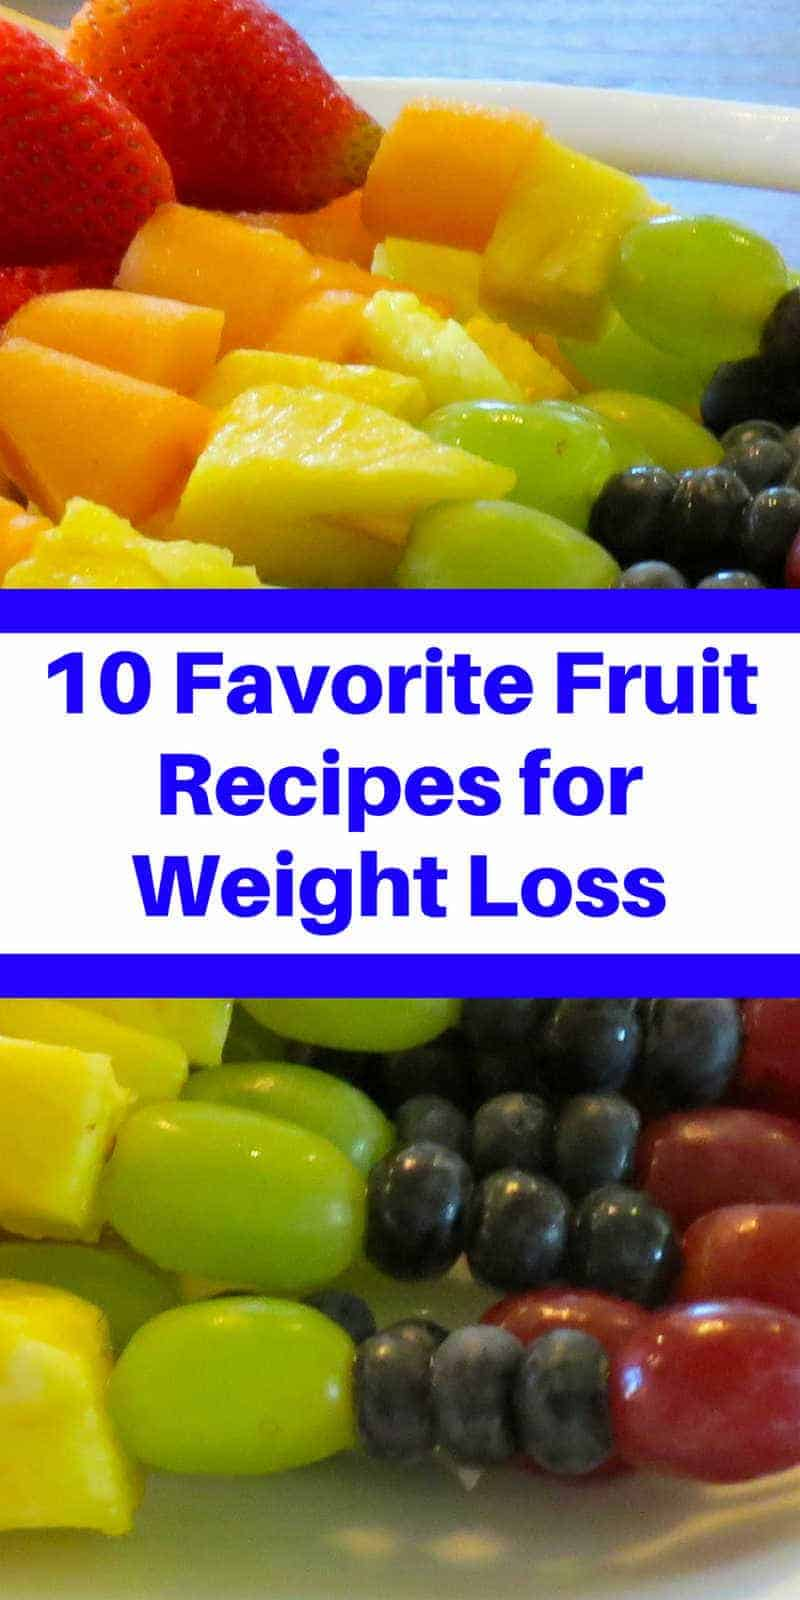 What To Do With A Bowl of Fruit. Good for Recipes, Weight Loss Food, Weight Loss Recipes, Healthy Meals, Weight Loss Snack Recipes, Weight Loss Dinner Recipes, Weight Loss Dessert Recipes, Weight Loss Low Carb Recipes, Weight Loss Lunch Recipes, Weight Loss Breakfast Recipes.